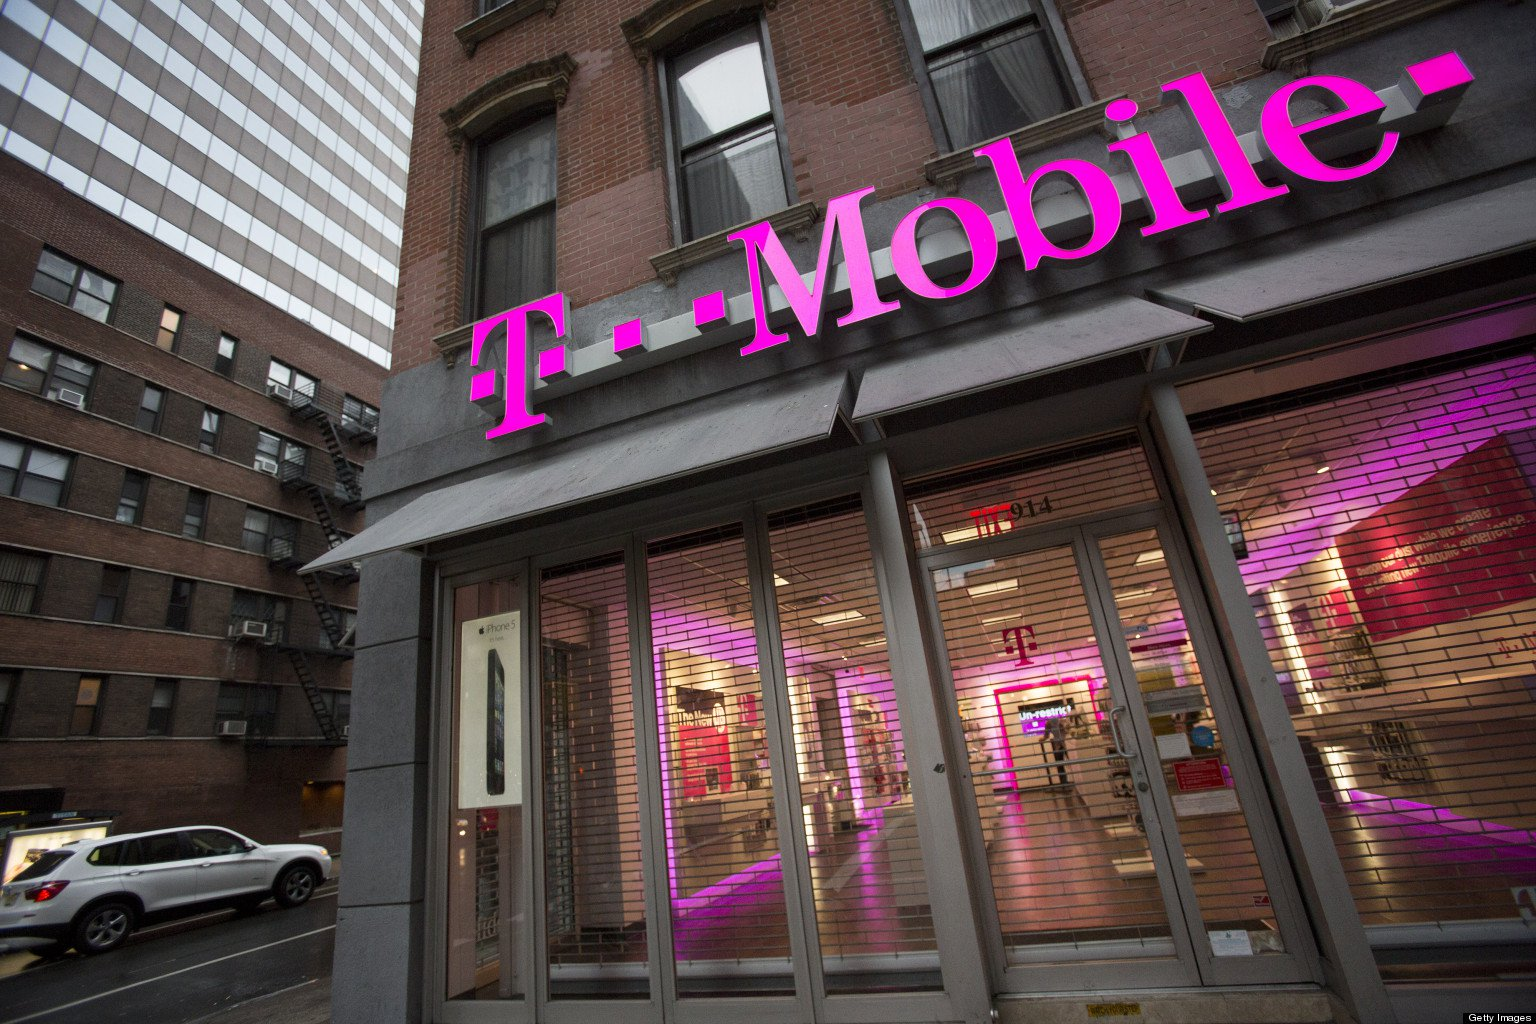 2M customers affected by T-Mobile data breach